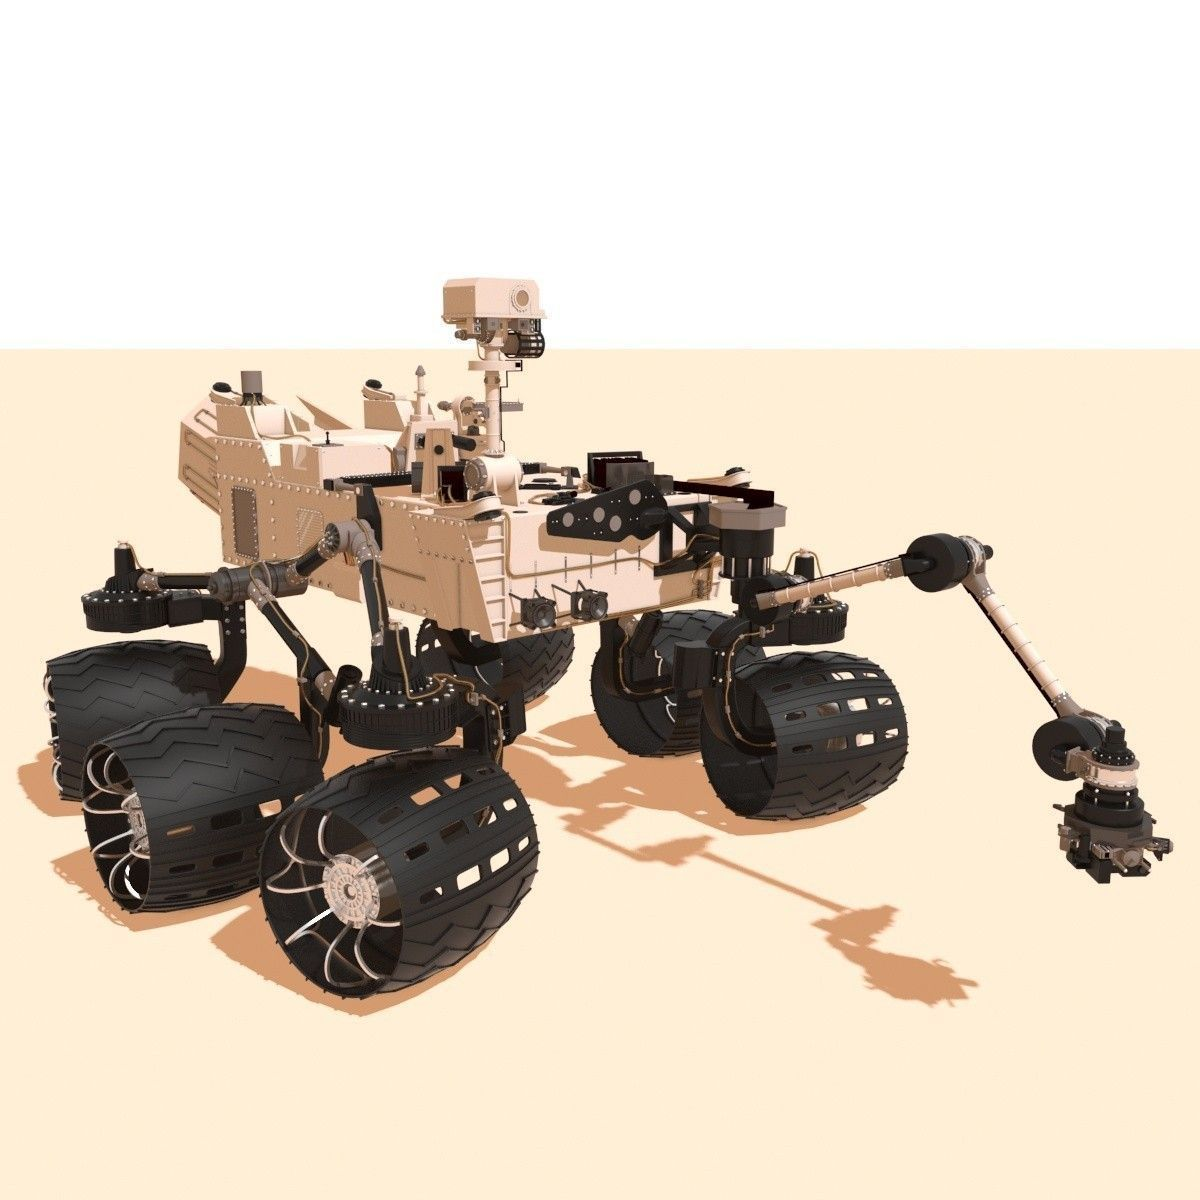 curiosity rover scale model - photo #12